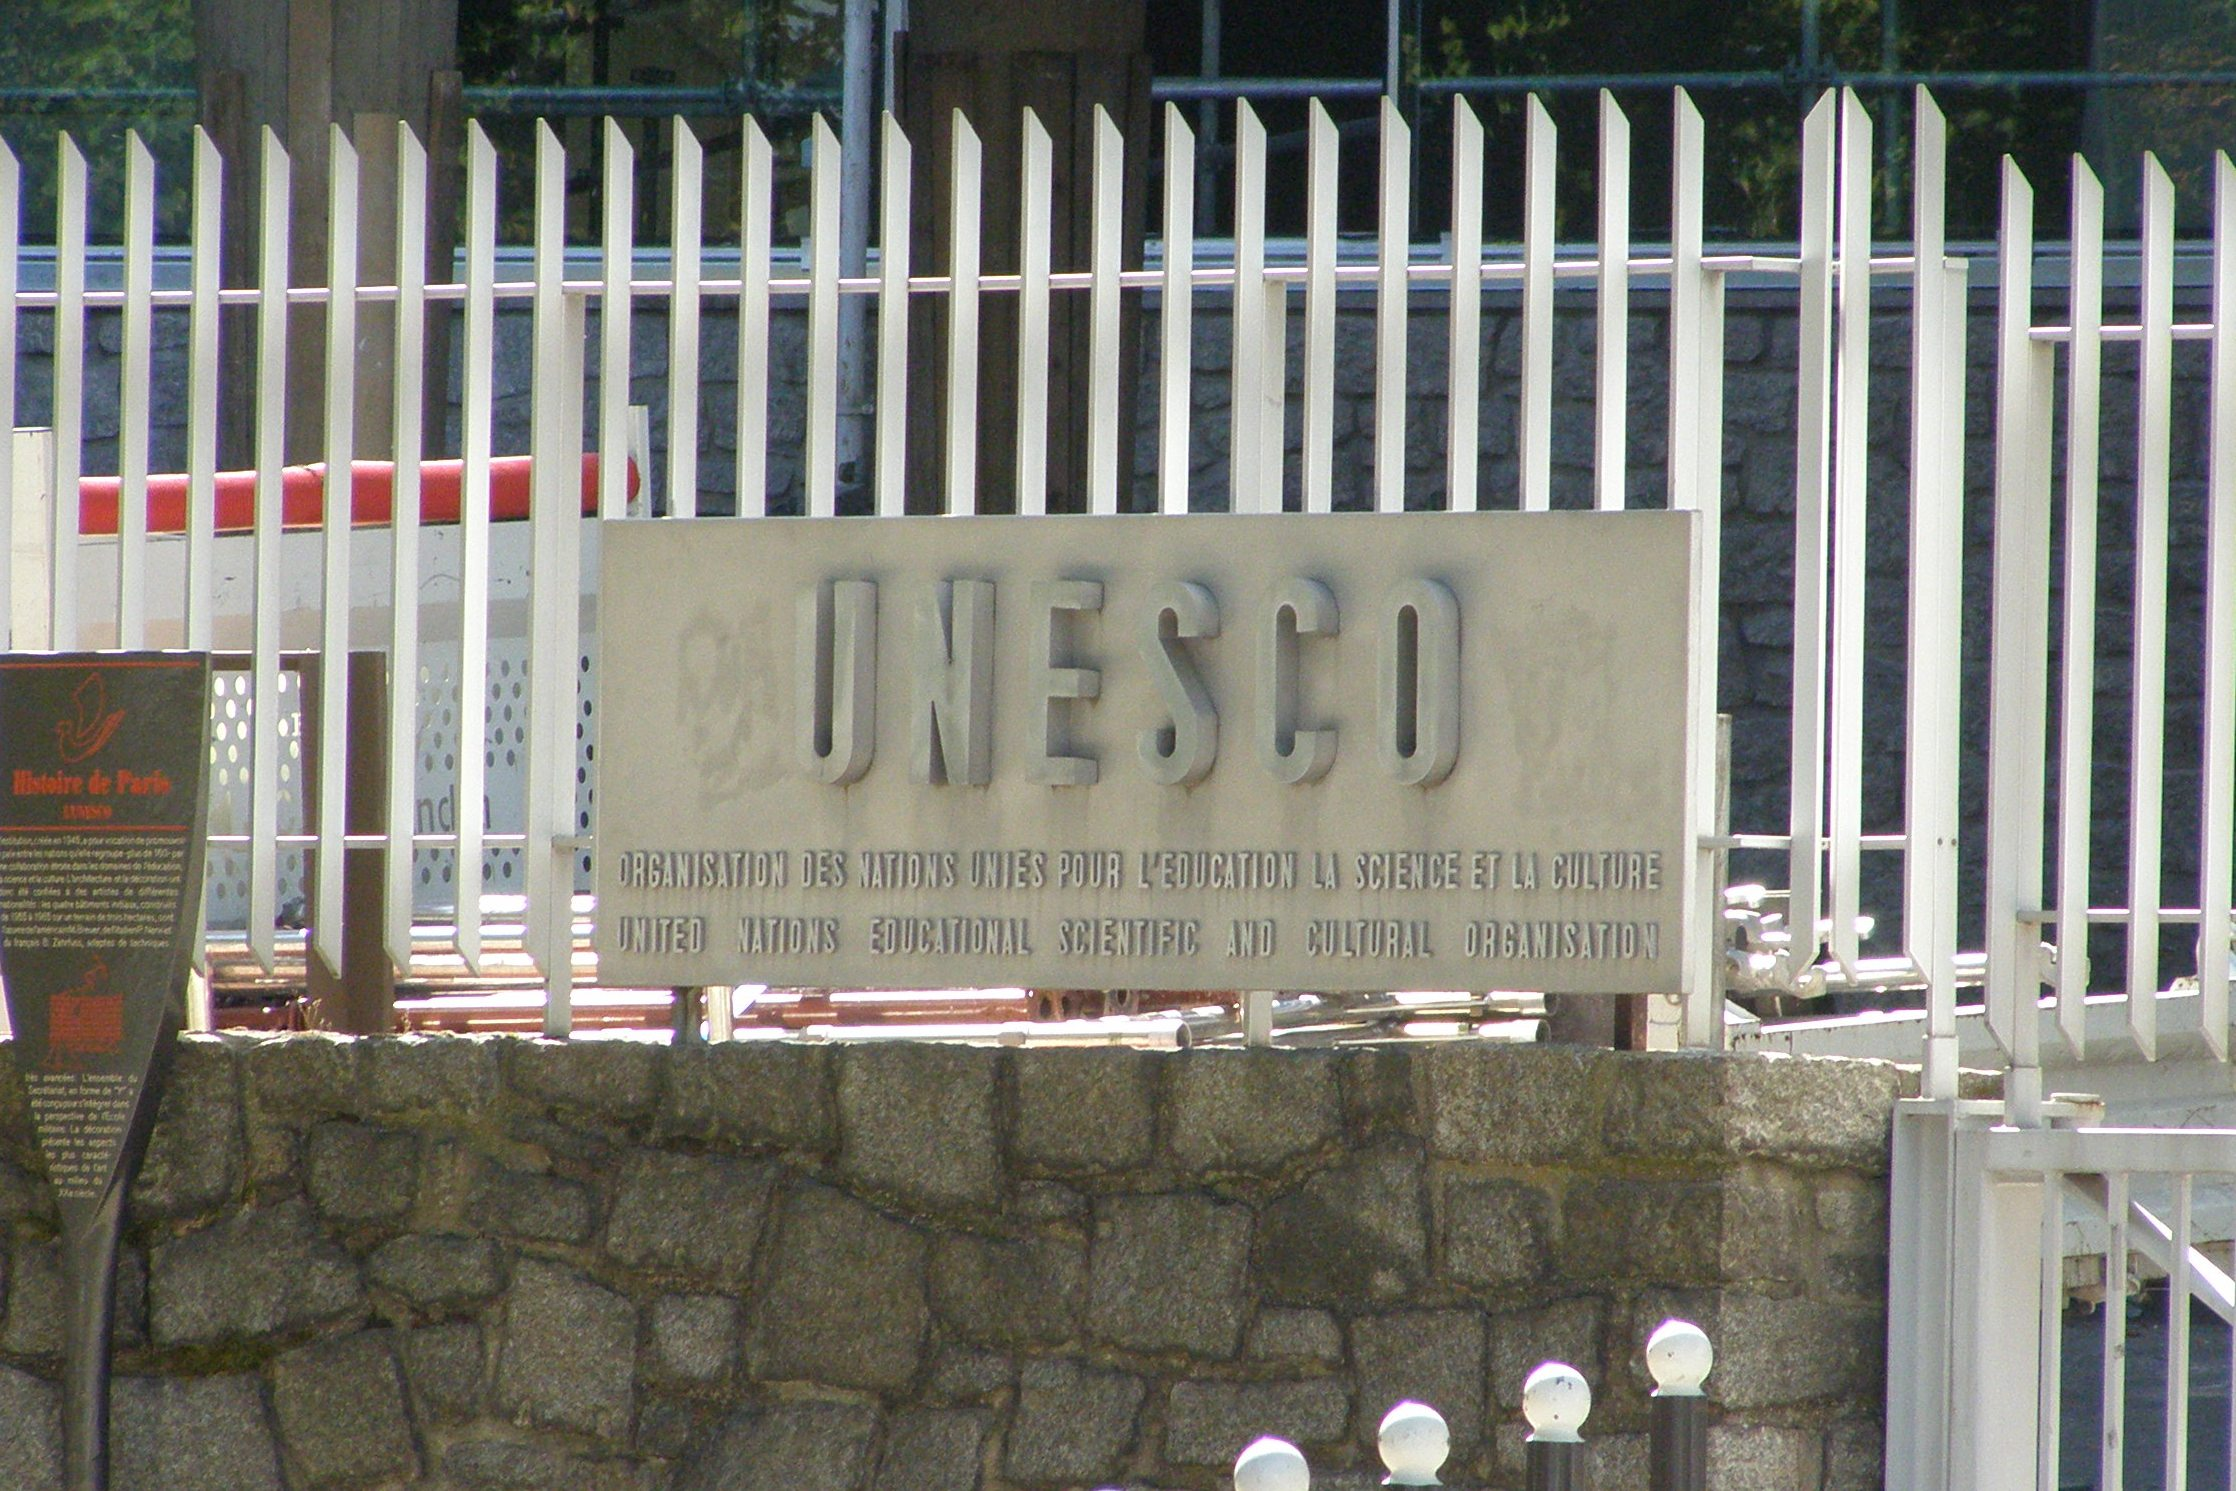 http://upload.wikimedia.org/wikipedia/commons/8/85/Pary%C5%BC_unesco_szyld.JPG